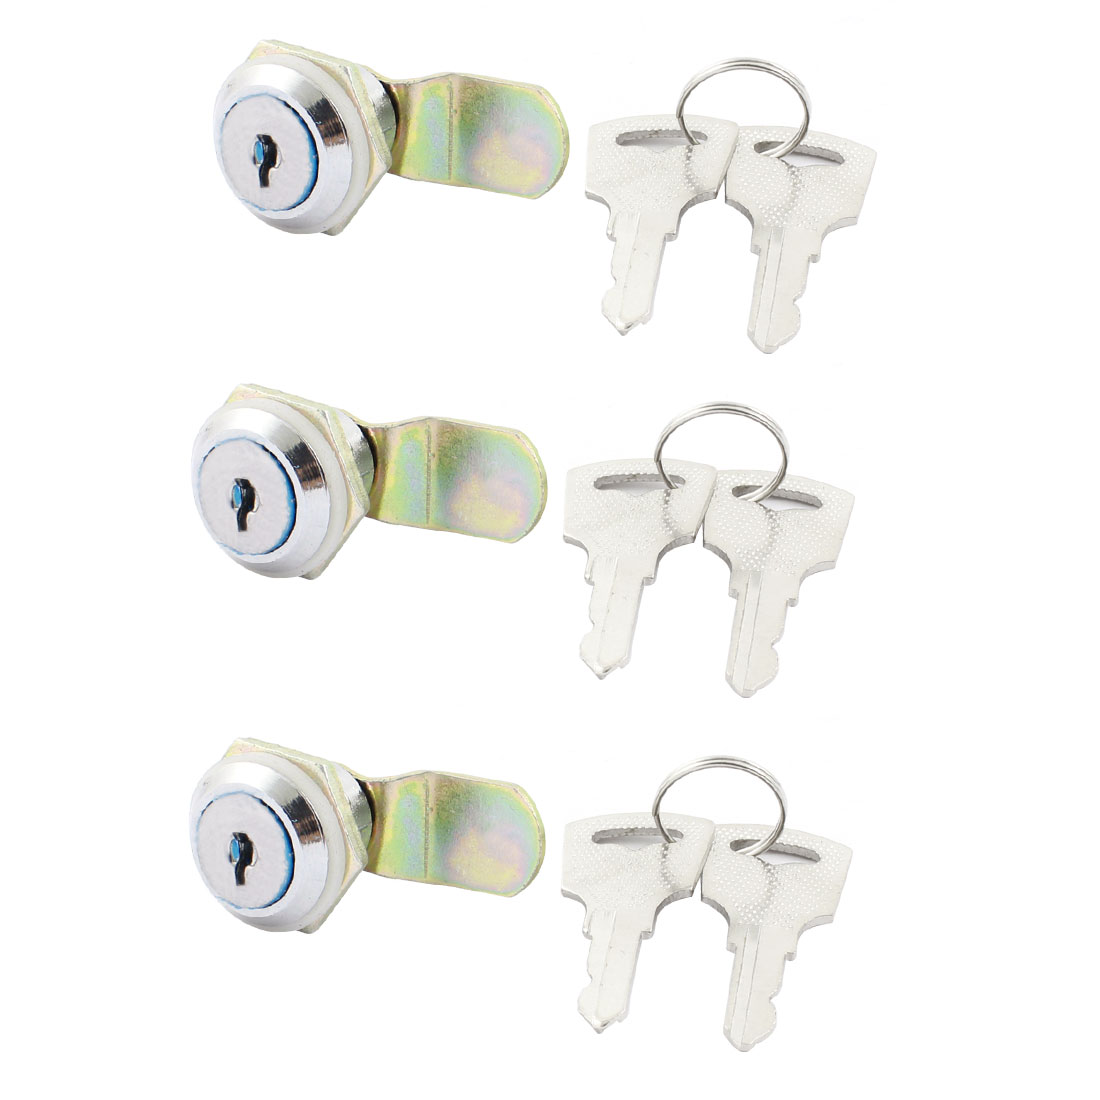 3 Pcs M8 Male Thread Panel Mounting Metal Quarter Turn Drawer Security Cam Lock w 6pcs Keys